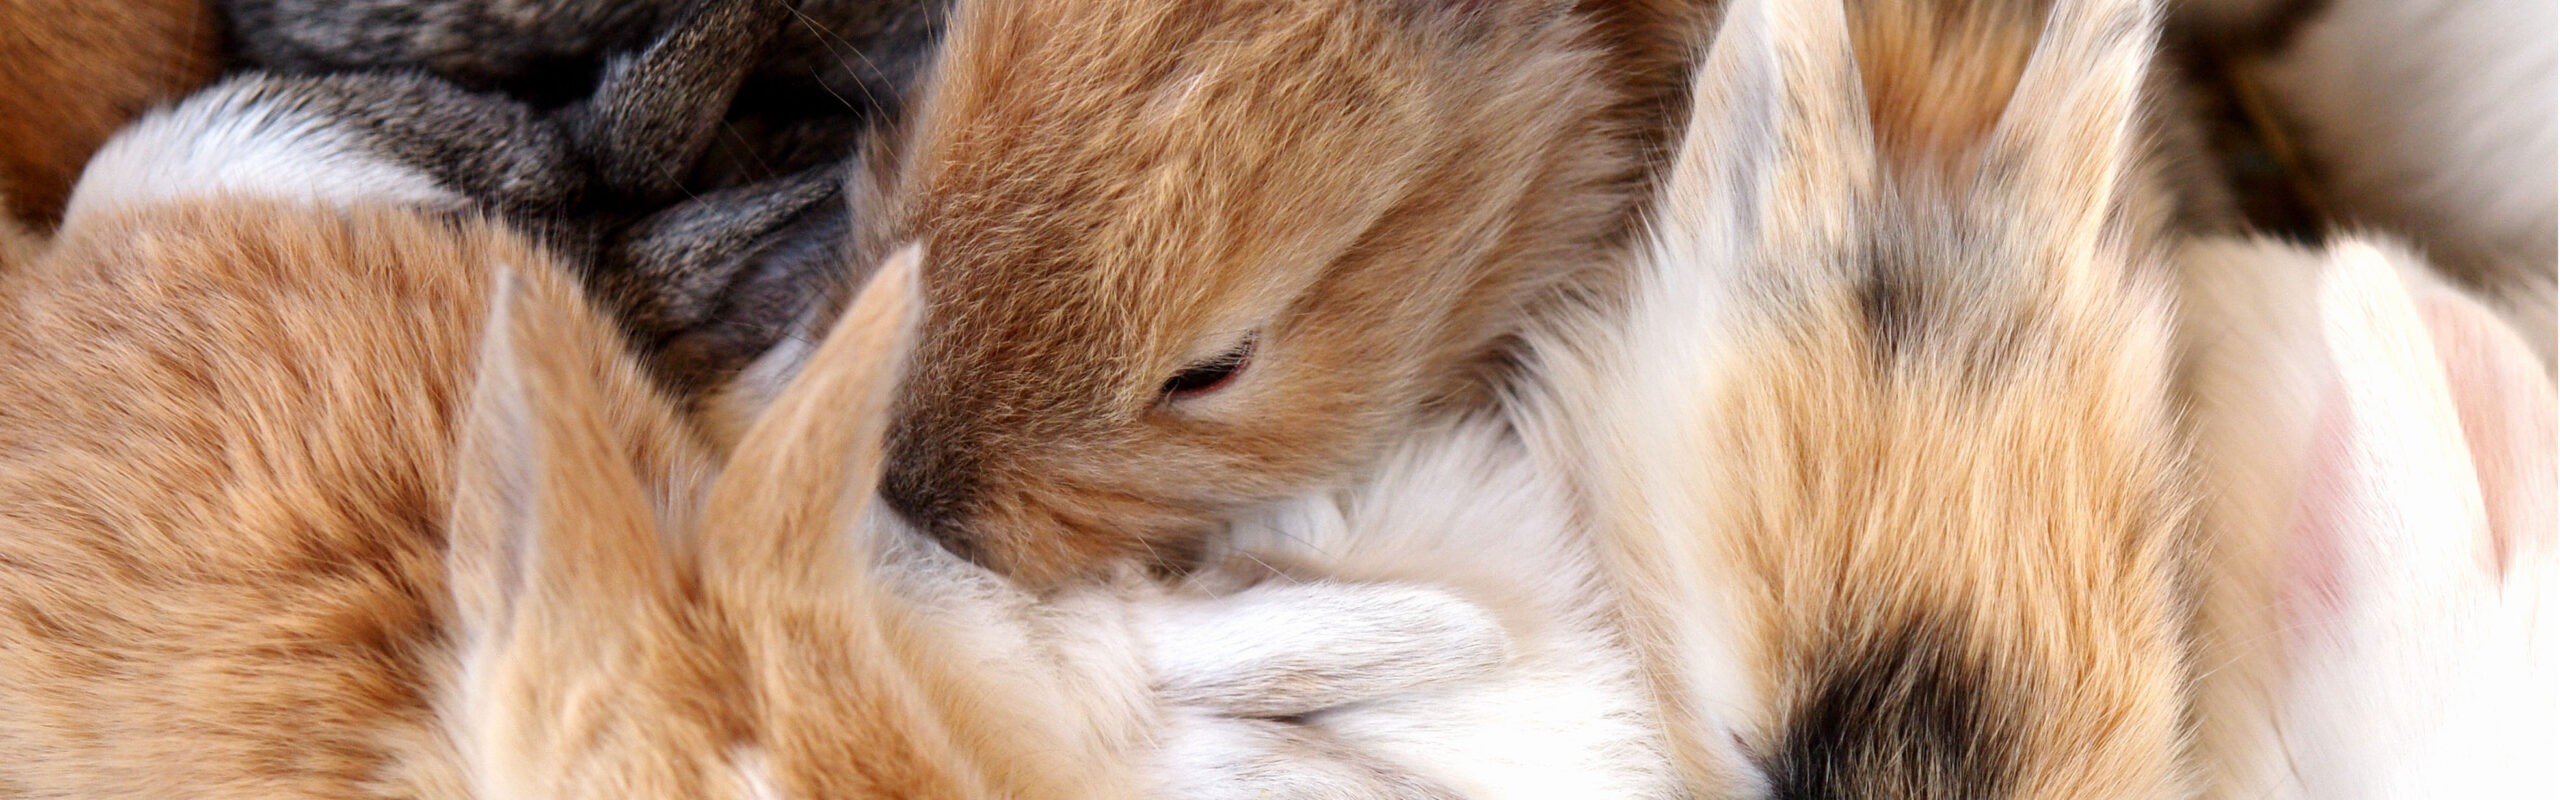 things you need for new rabbit